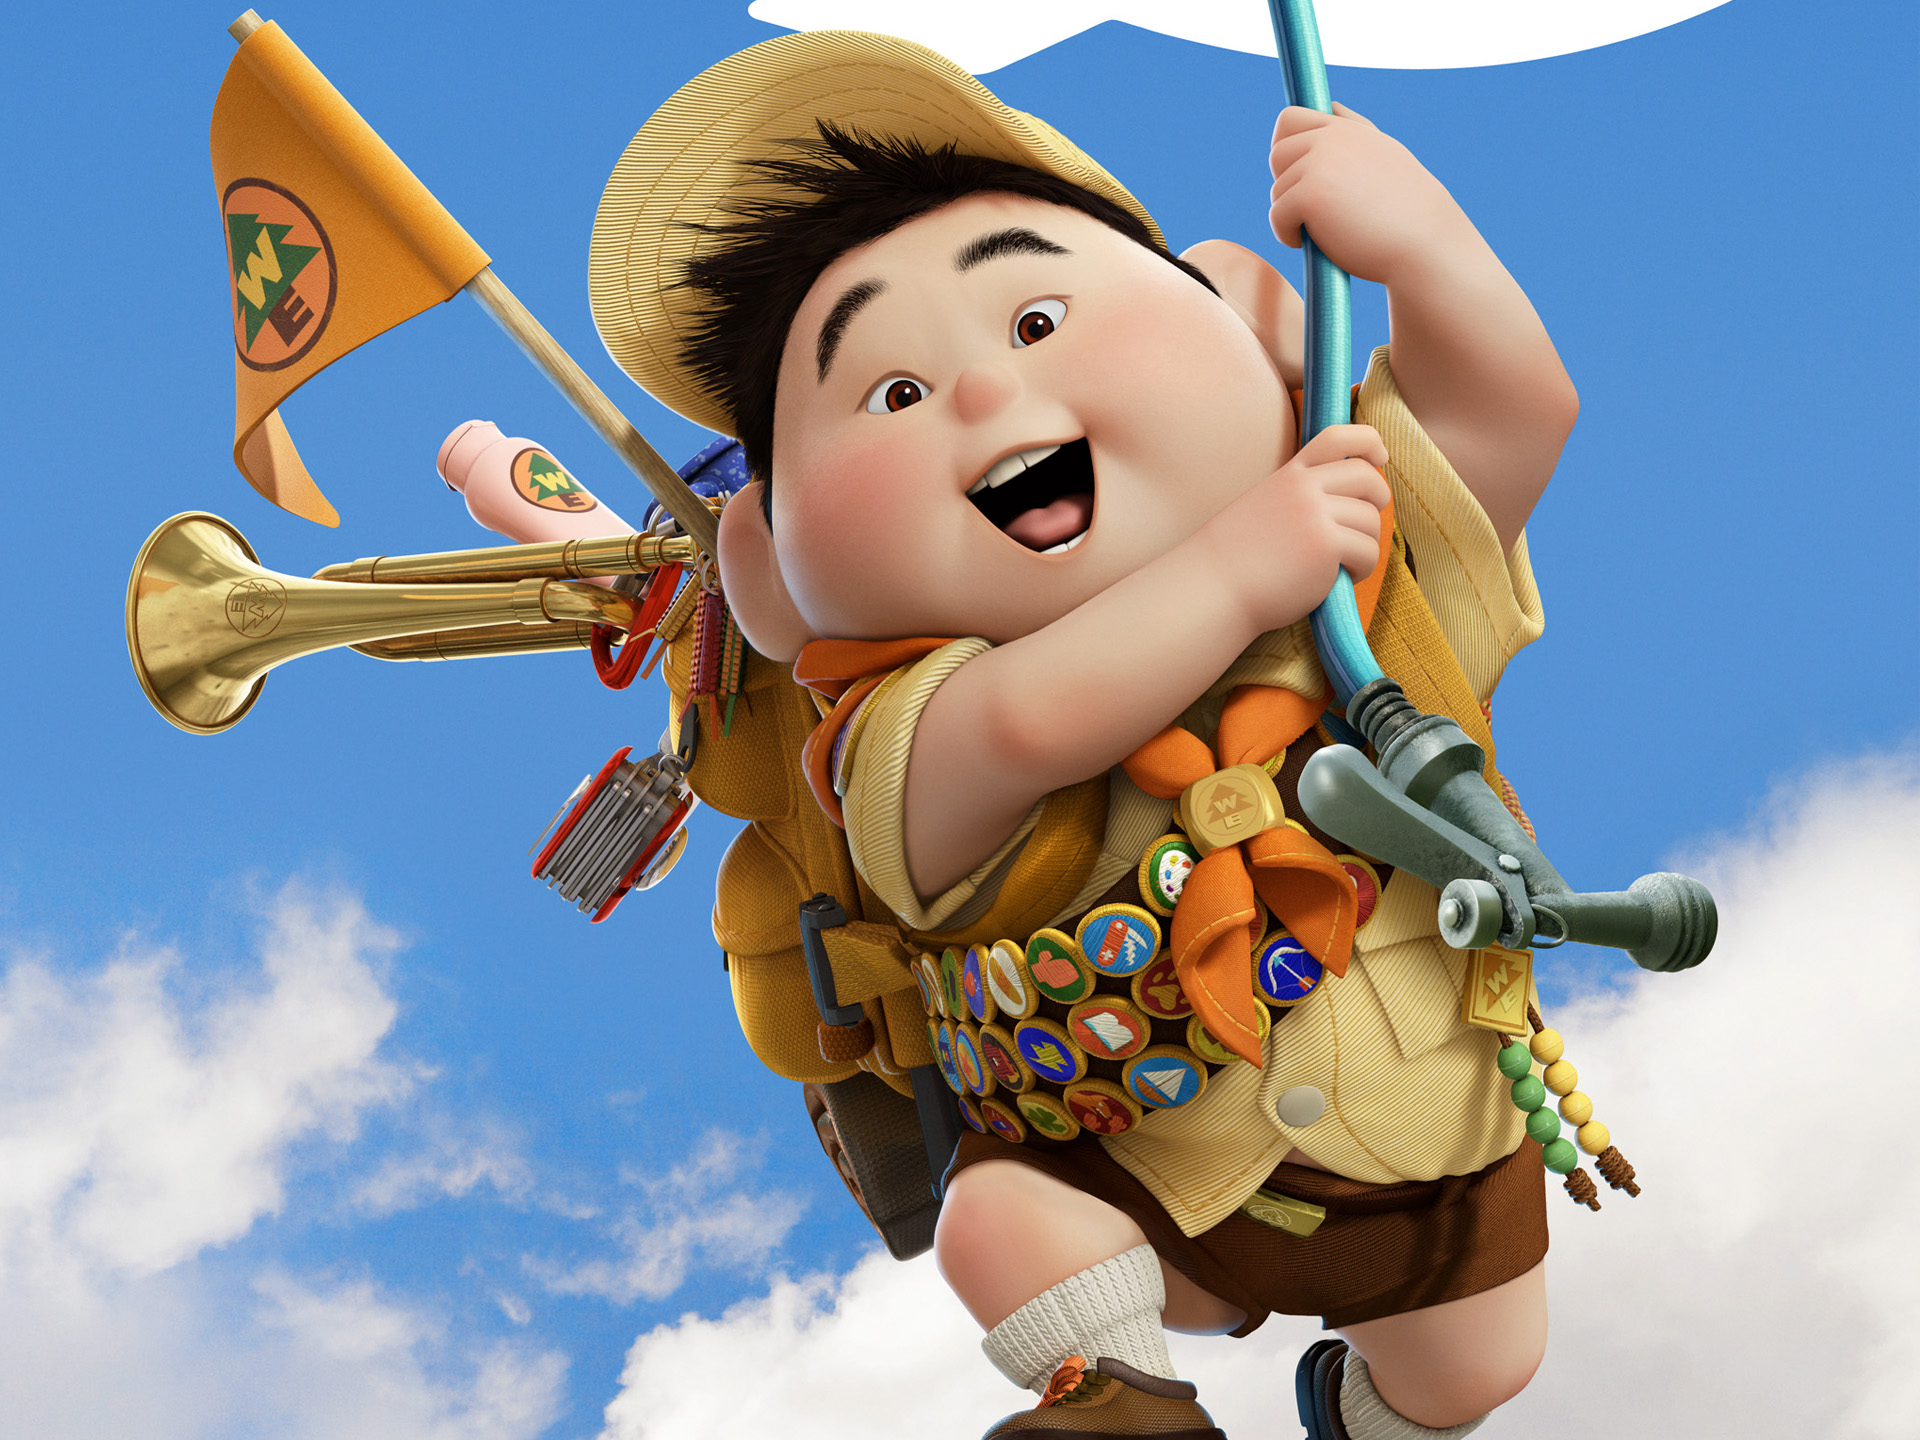 Russell Boy in Pixar's UP 306.52 Kb